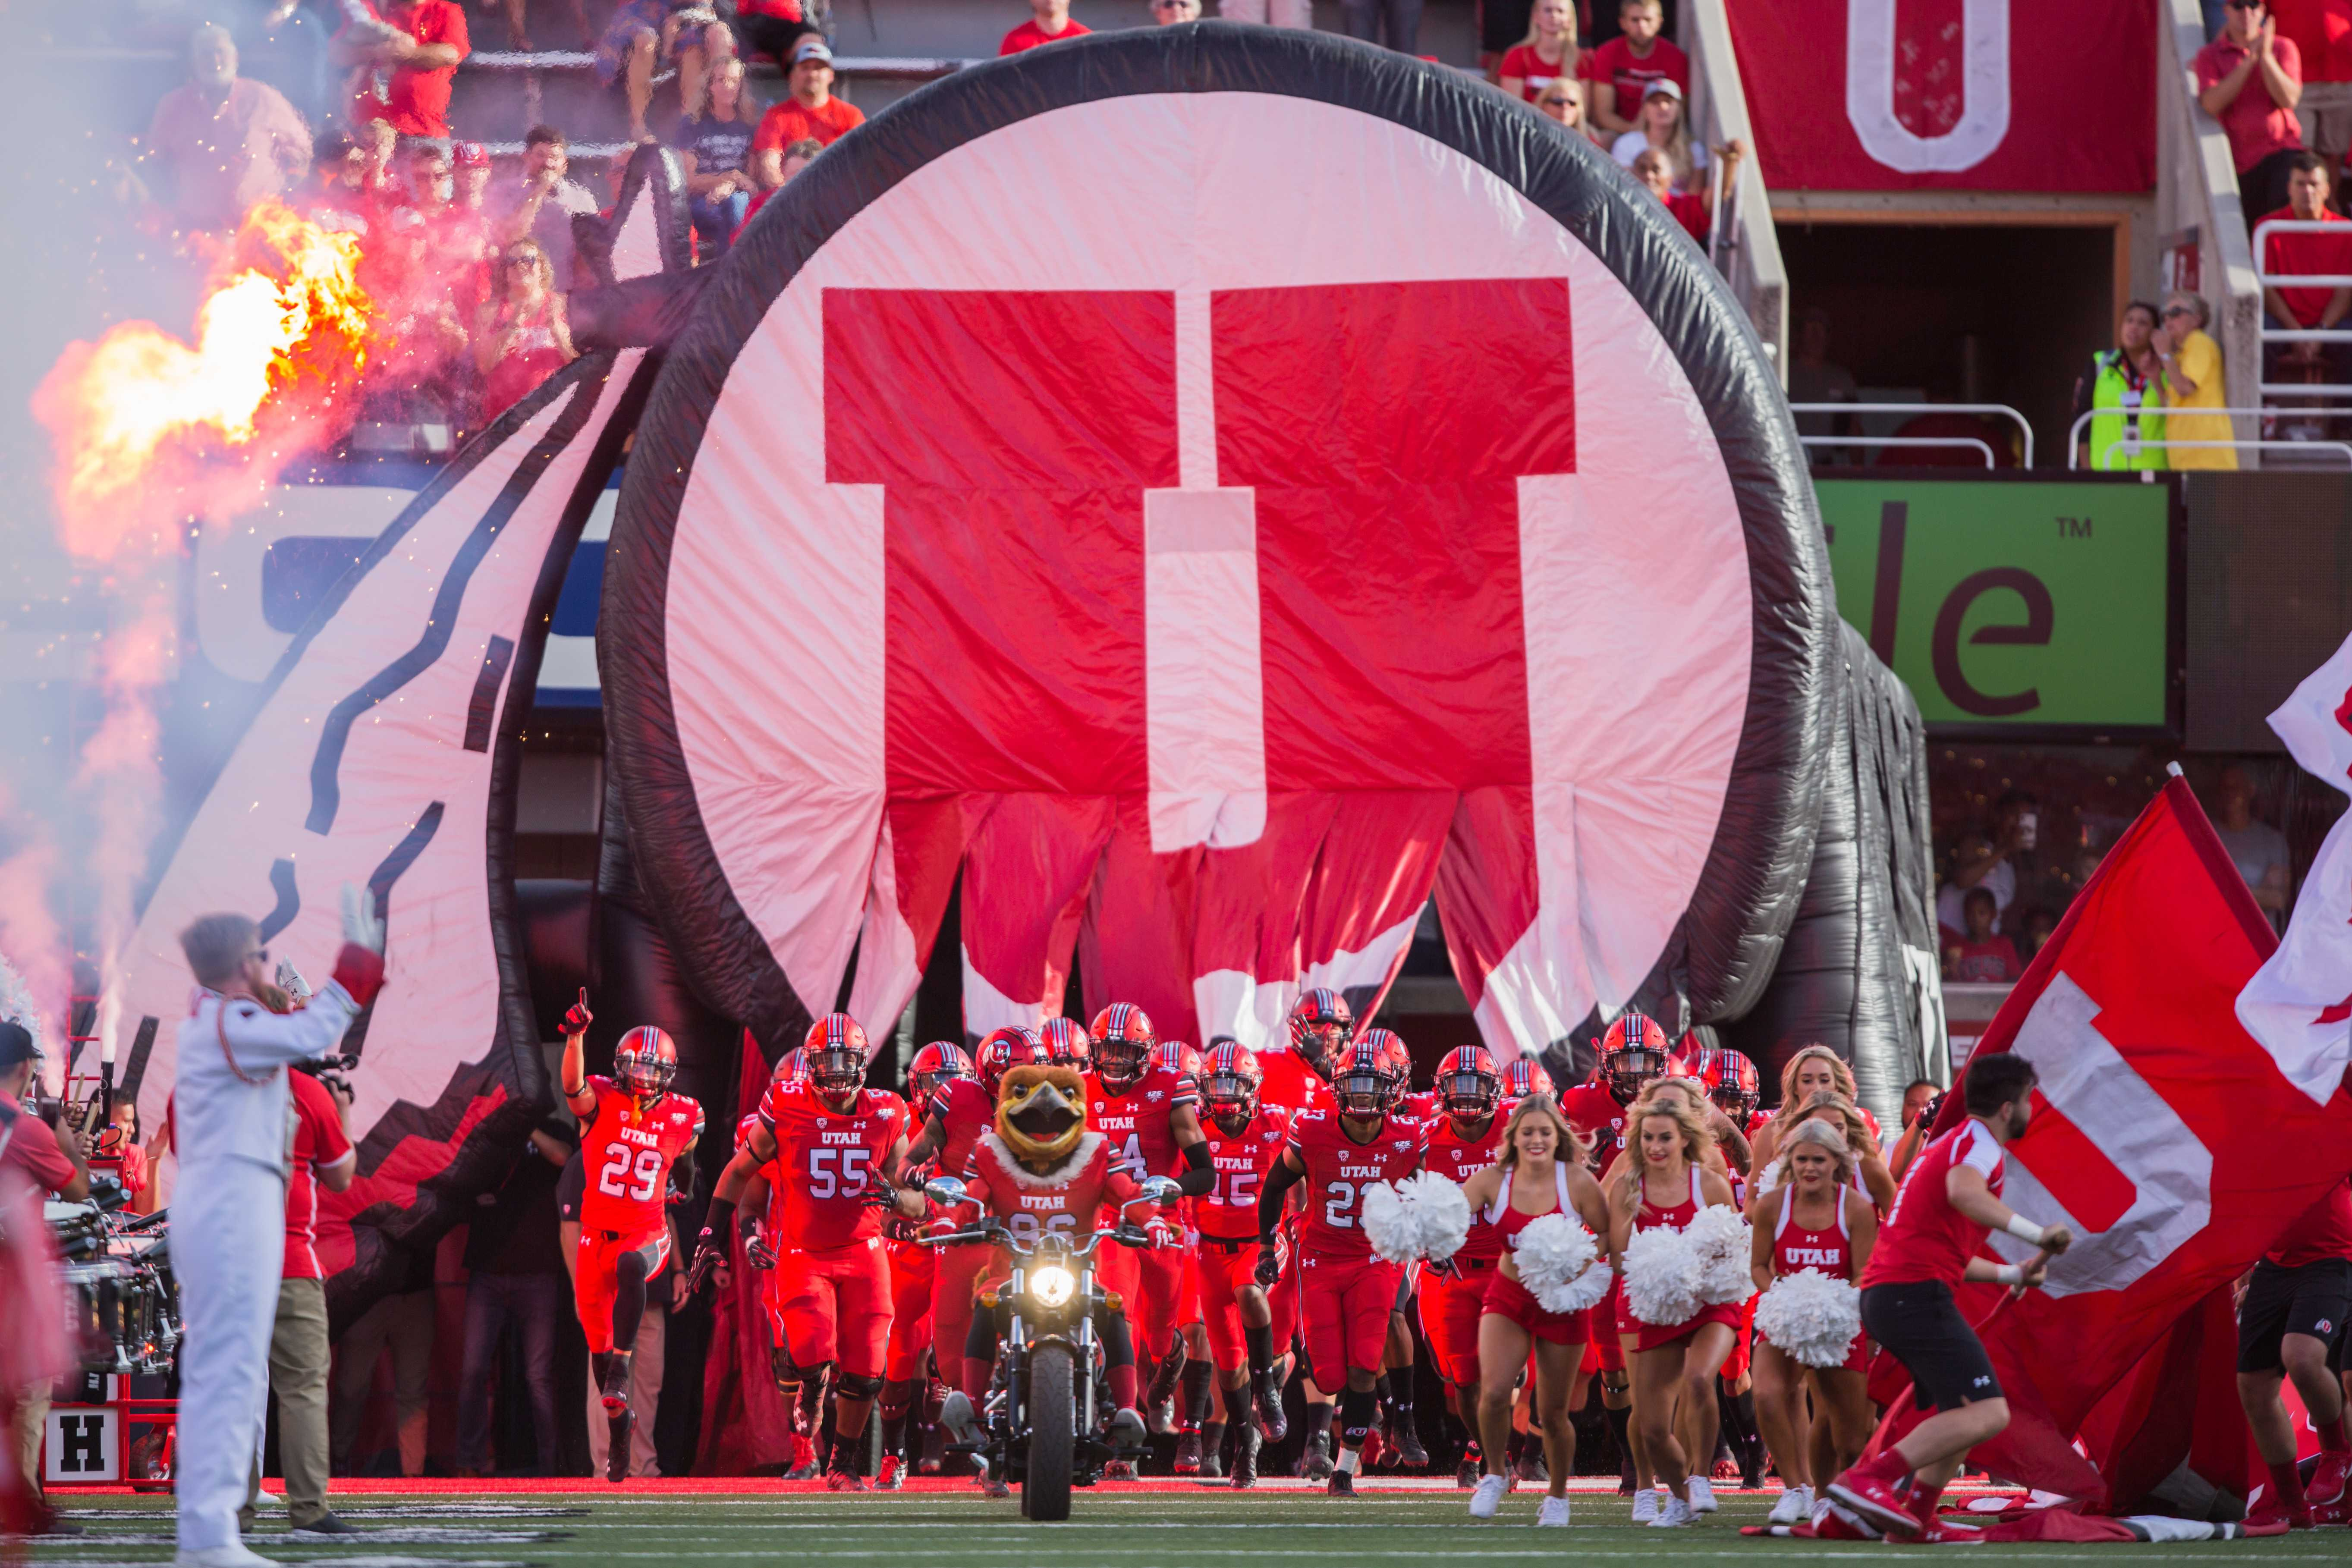 The University of Utah football team marches onto the field during the NCAA football game vs. Weber State at Rice-Eccles Stadium in Salt Lake City, UT on Thursday August 30, 2018.  (Photo by Curtis Lin/ Daily Utah Chronicle)